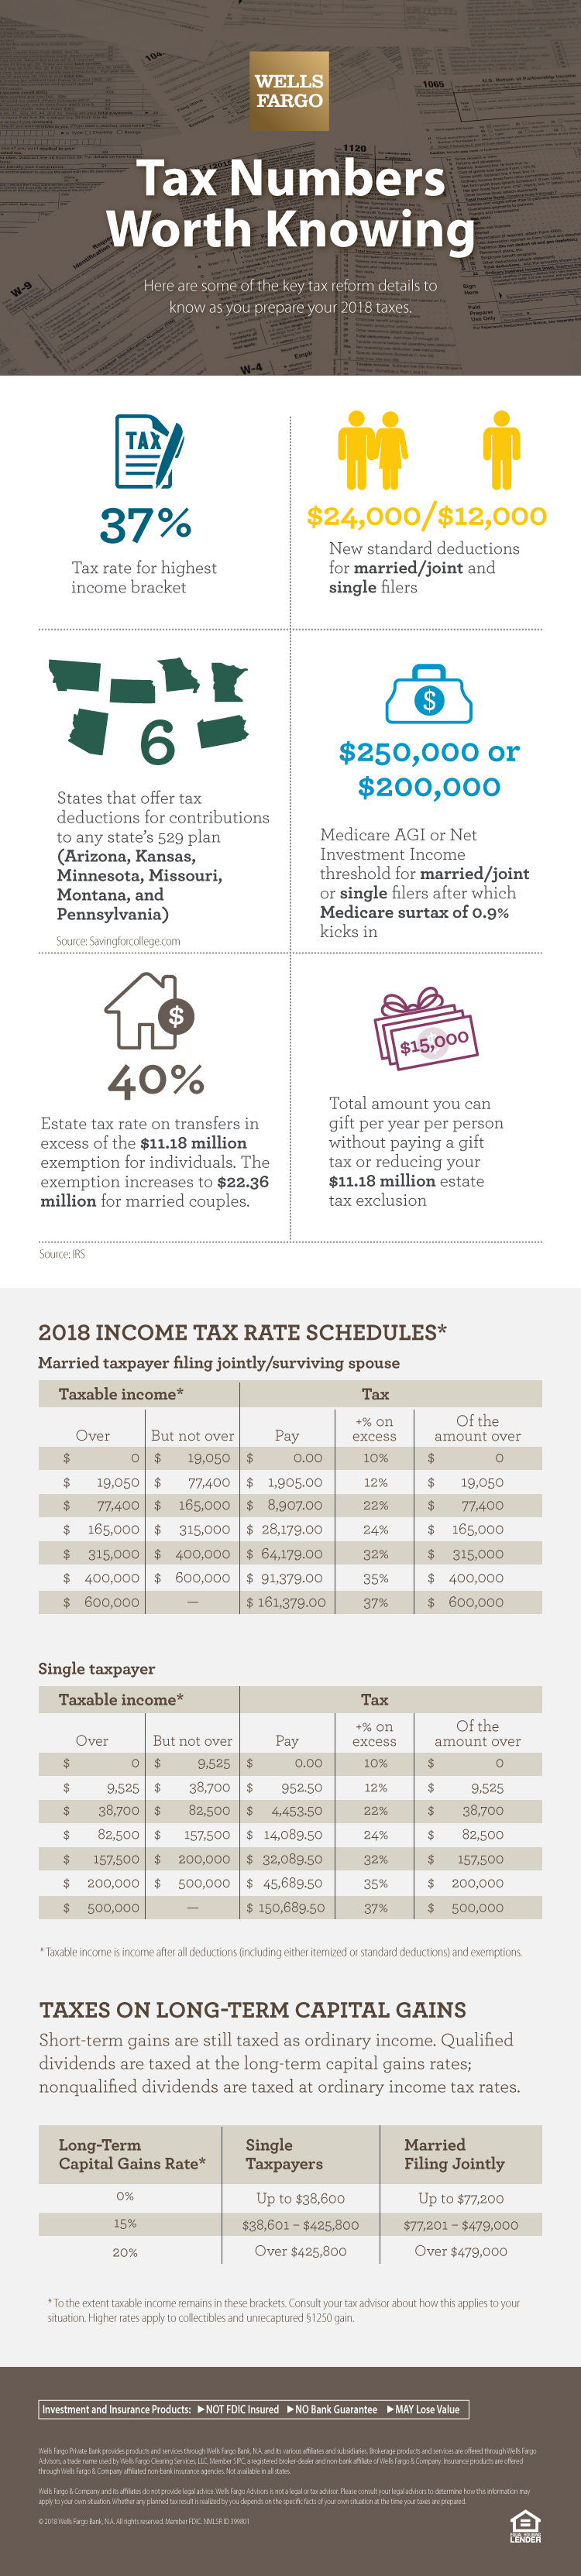 The headline of this infographic is Tax Numbers Worth Knowing. Introductory text says Here are some of the key tax reform details to know as you prepare your 2018 income taxes. 37%: Tax rate for highest income bracket.  $24,000/$12,000: New standard deductions for married/joint and single filers. 6: States that offer tax deductions for contributions to any state's 529 plan (Arizona, Kansas, Minnesota, Missouri, Montana, and Pennsylvania). Source: Savingforcollege.com. $250,000 or $200,000: Medicare AGI or Net Investment Income threshold for married/joint or single filers after which Medicare surtax of 0.9% kicks in 40%: Estate tax rate on transfers in excess of the $11.18 million exemption for individuals. The exemption amount increases to $22.36 million for married couples. $15,000: Total amount you can gift per year per person without paying a gift tax or reducing your $11.18 million estate tax exclusion Source: IRS. A section labeled 2018 Income Tax Rate Schedules* outlines the tax rate for varying income levels. For a married taxpayer filing jointly/surviving spouse, taxable income* over $0 but not over $19,050 pays $0.00 plus 10% on excess of the amount over $0. Taxable income over $19,050 but not over $77,400 pays $1,905.00 plus 12% on excess of the amount over $19,050. Taxable income over $77,400 but not over $165,000 pays $8,907.00 plus 22% on excess of the amount over $77,400. Taxable income over $165,000 but not over $315,000 pays $28,179.00 plus 24% on excess of the amount over $165,000. Taxable income over $315,000 but not over $400,000 pays $64,179.00 plus 32% on excess of the amount over $315,000. Taxable income over $400,000 but not over $600,000 pays $91,379.00 plus 35% on excess of the amount over $411,550. Taxable income over $600,000 pays $161,379.00 plus 37% tax of the amount over $611,550. For a single taxpayer, taxable income over $0 but not over $9,525 pays $0.00 plus 10% on excess of the amount over $0. Taxable income over $9,525 but not over